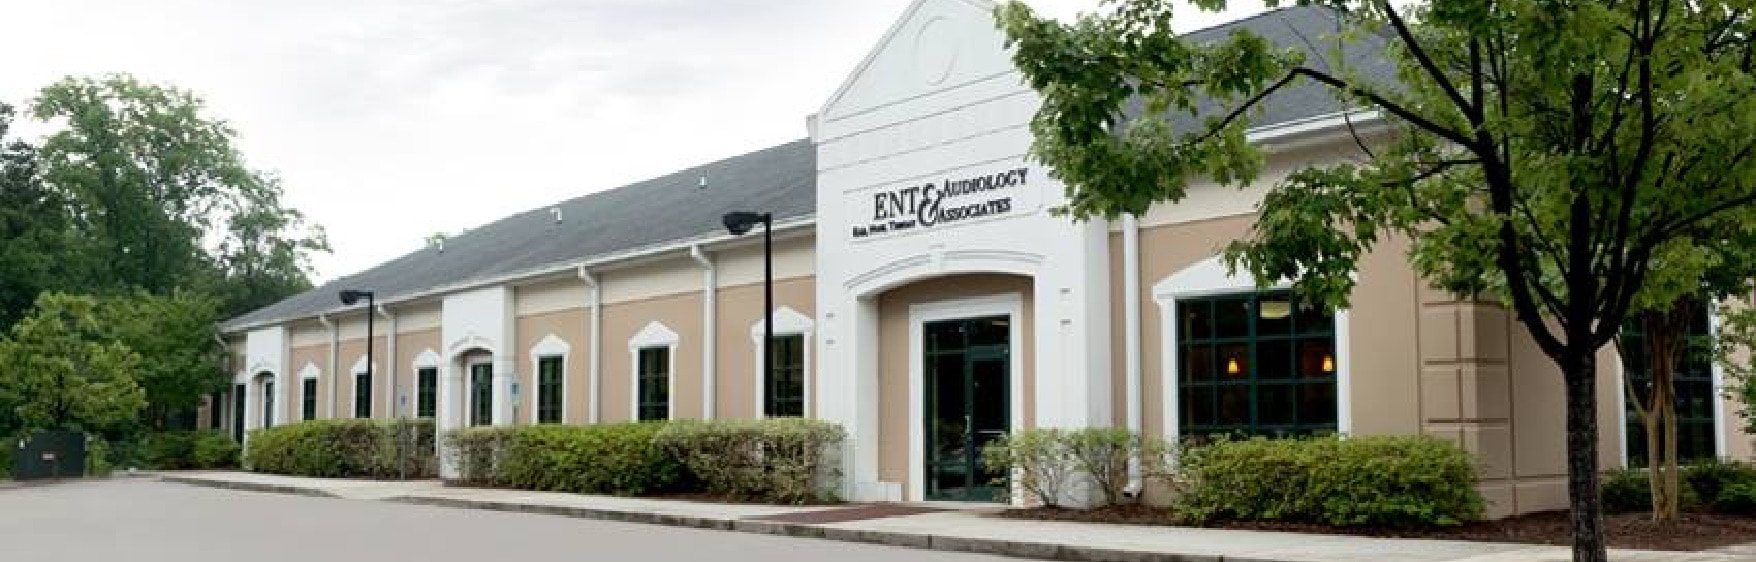 ENT & Audiology Associates building located in Raleigh NC